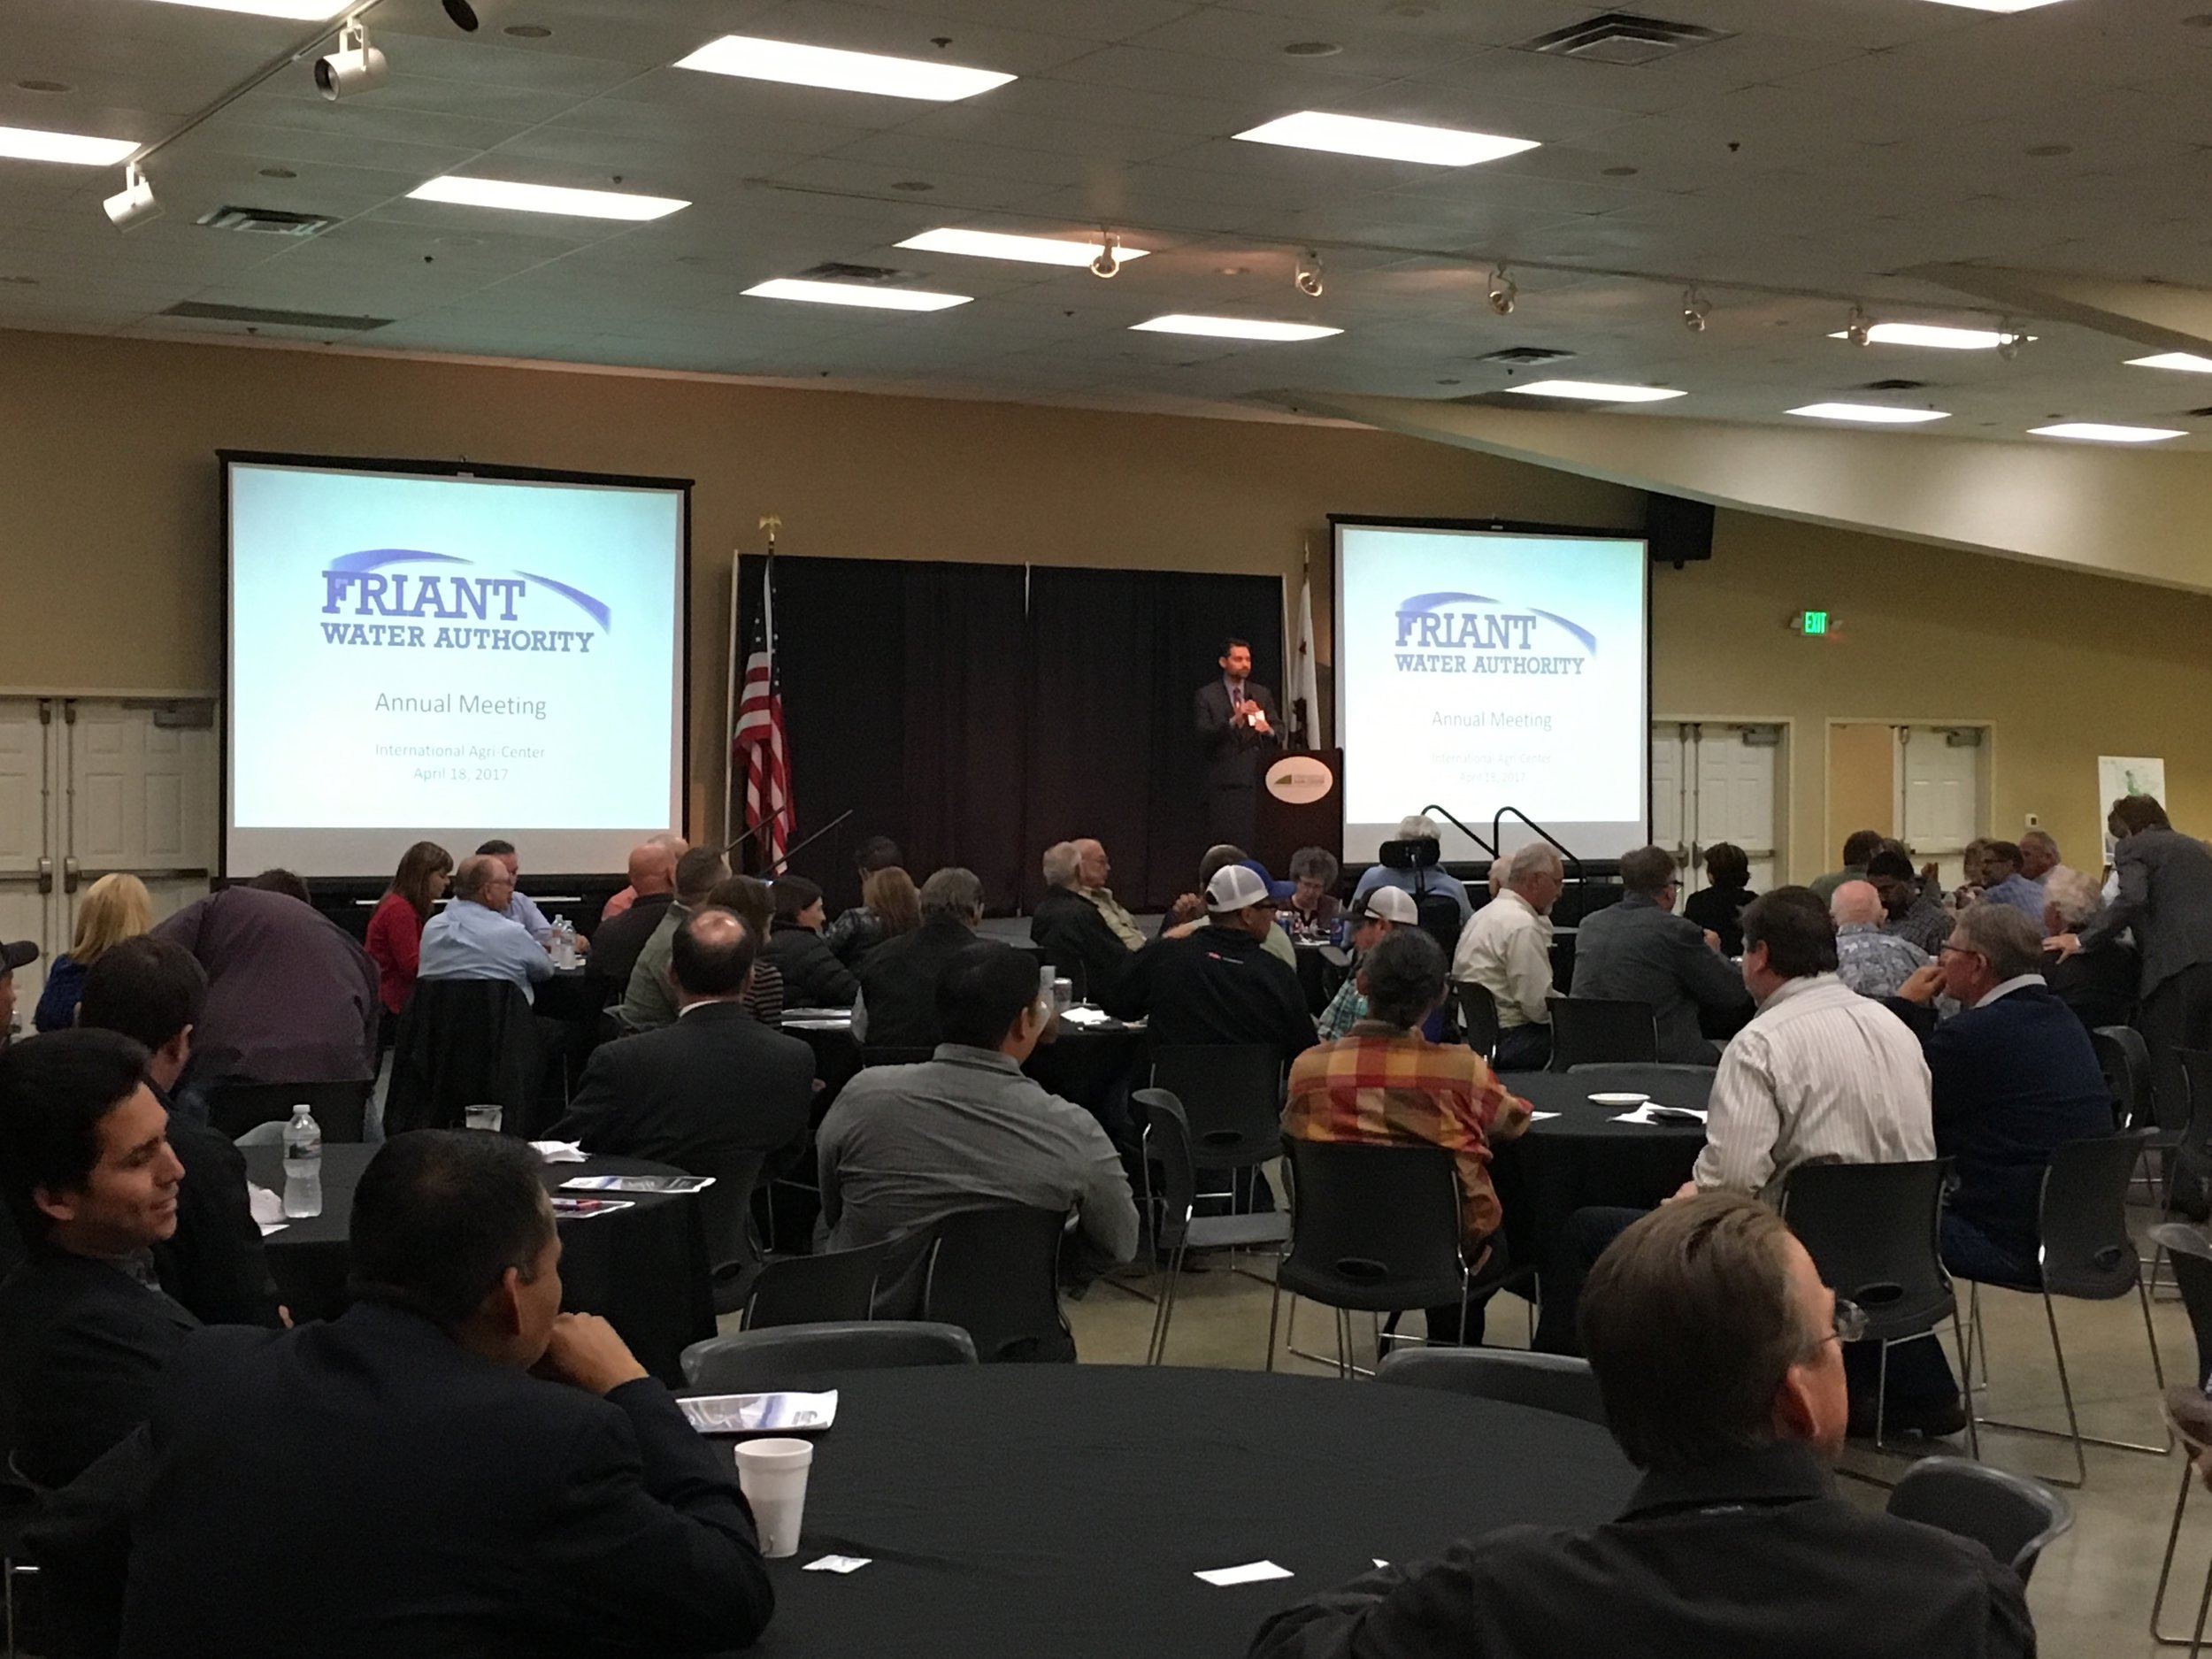 Jason Phillips addresses the Friant Divisionduring FWA's first Annual Meeting in 2017 at the International Agri-Center in Tulare.